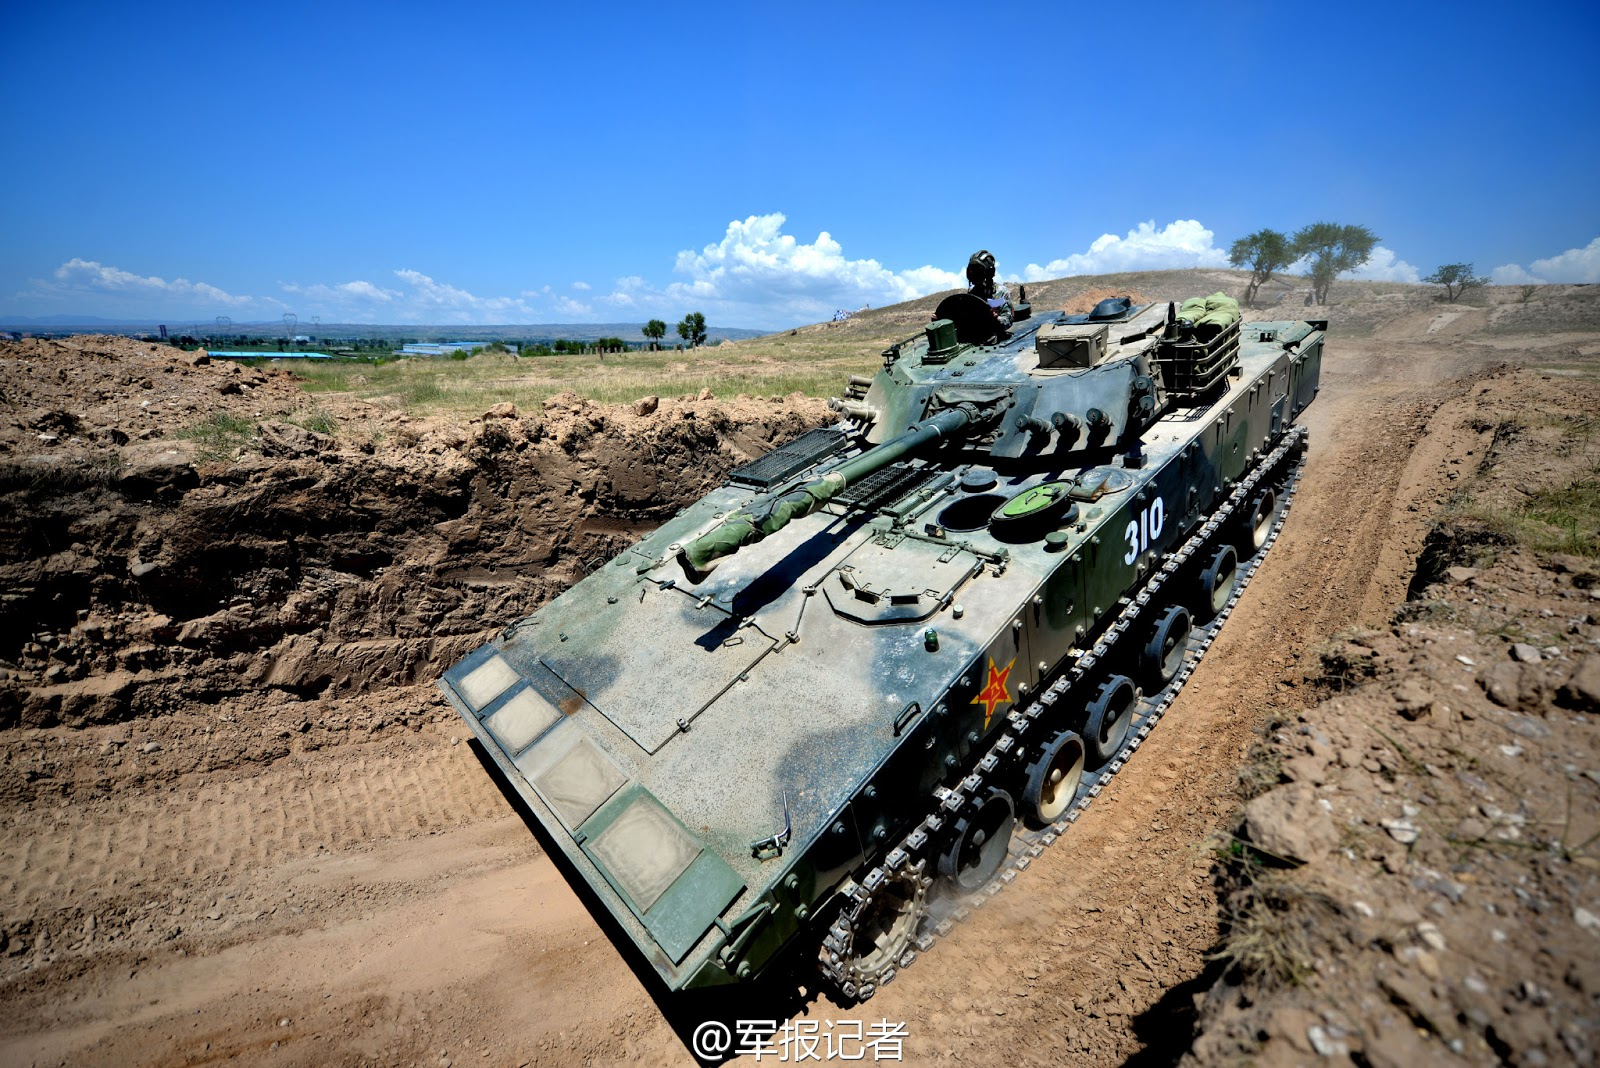 zbd 04 infantry fighting vehicle - HD 1600×1068